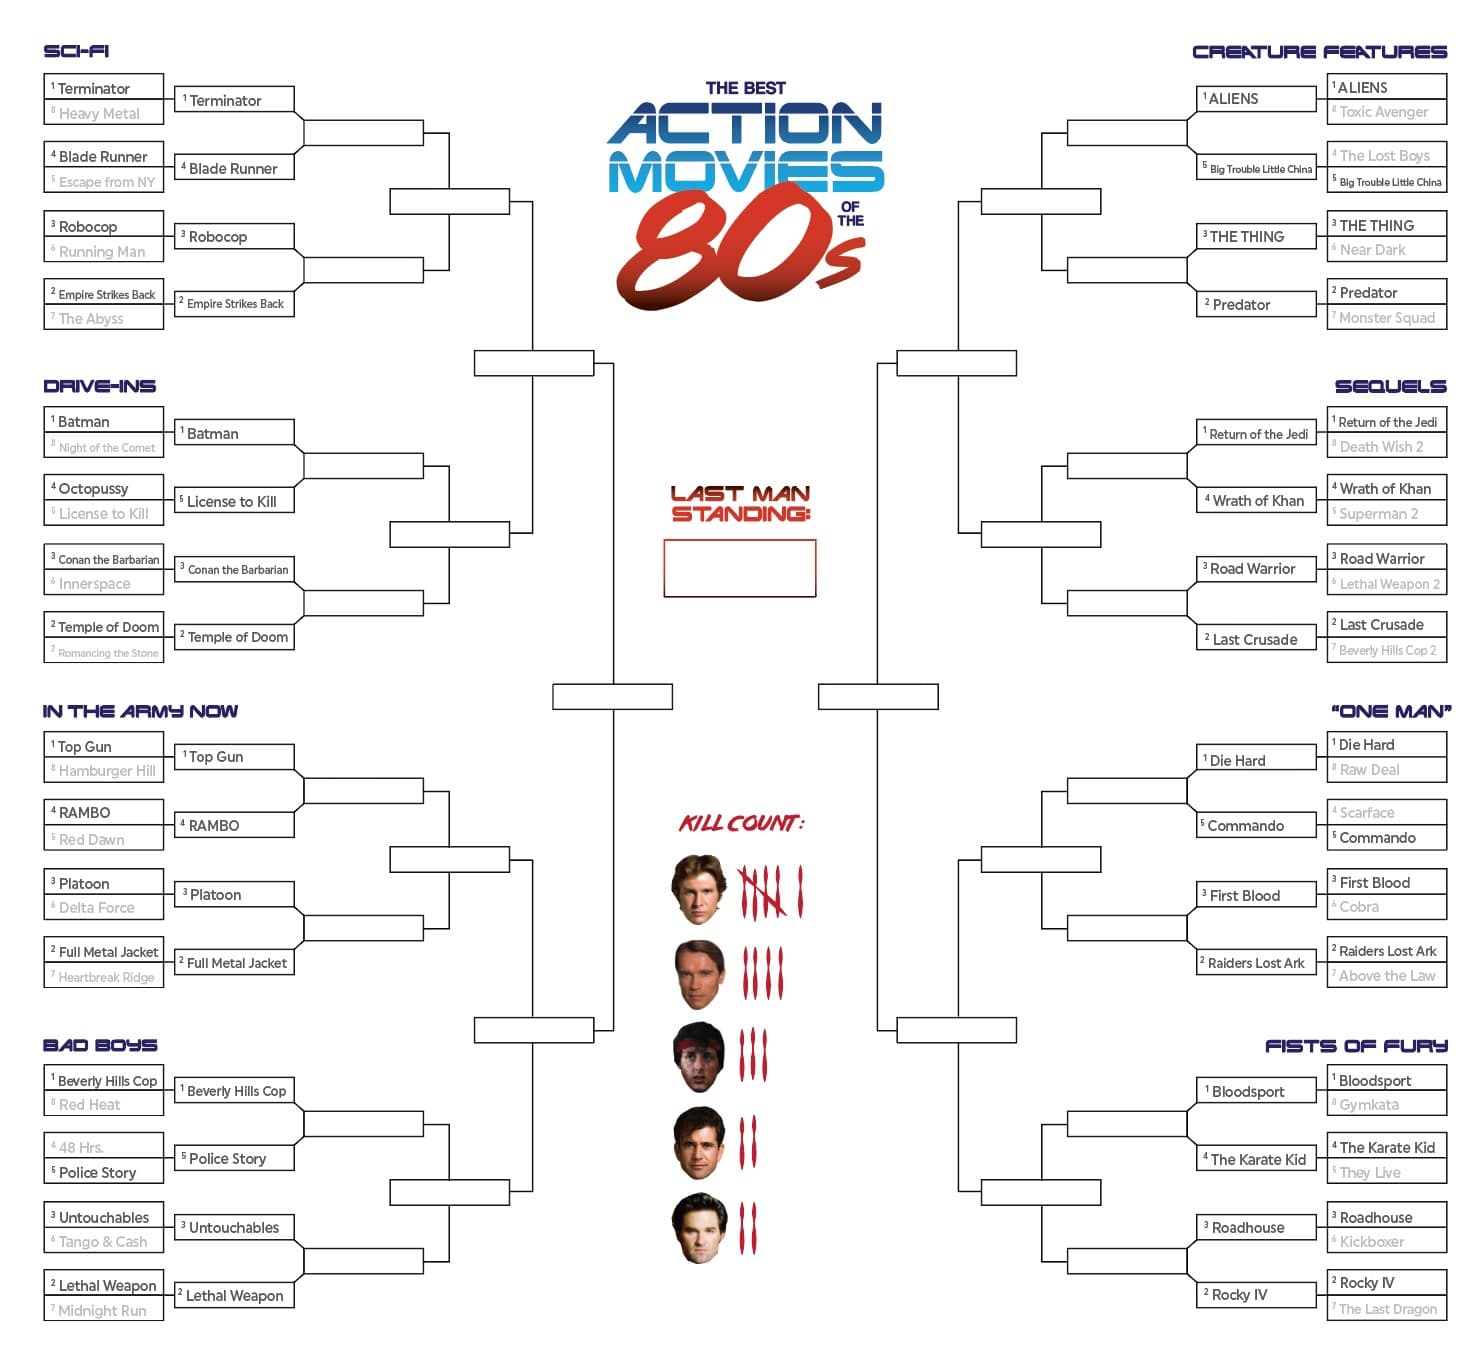 Best 80s Action Movies: Up-to-Date Bracket